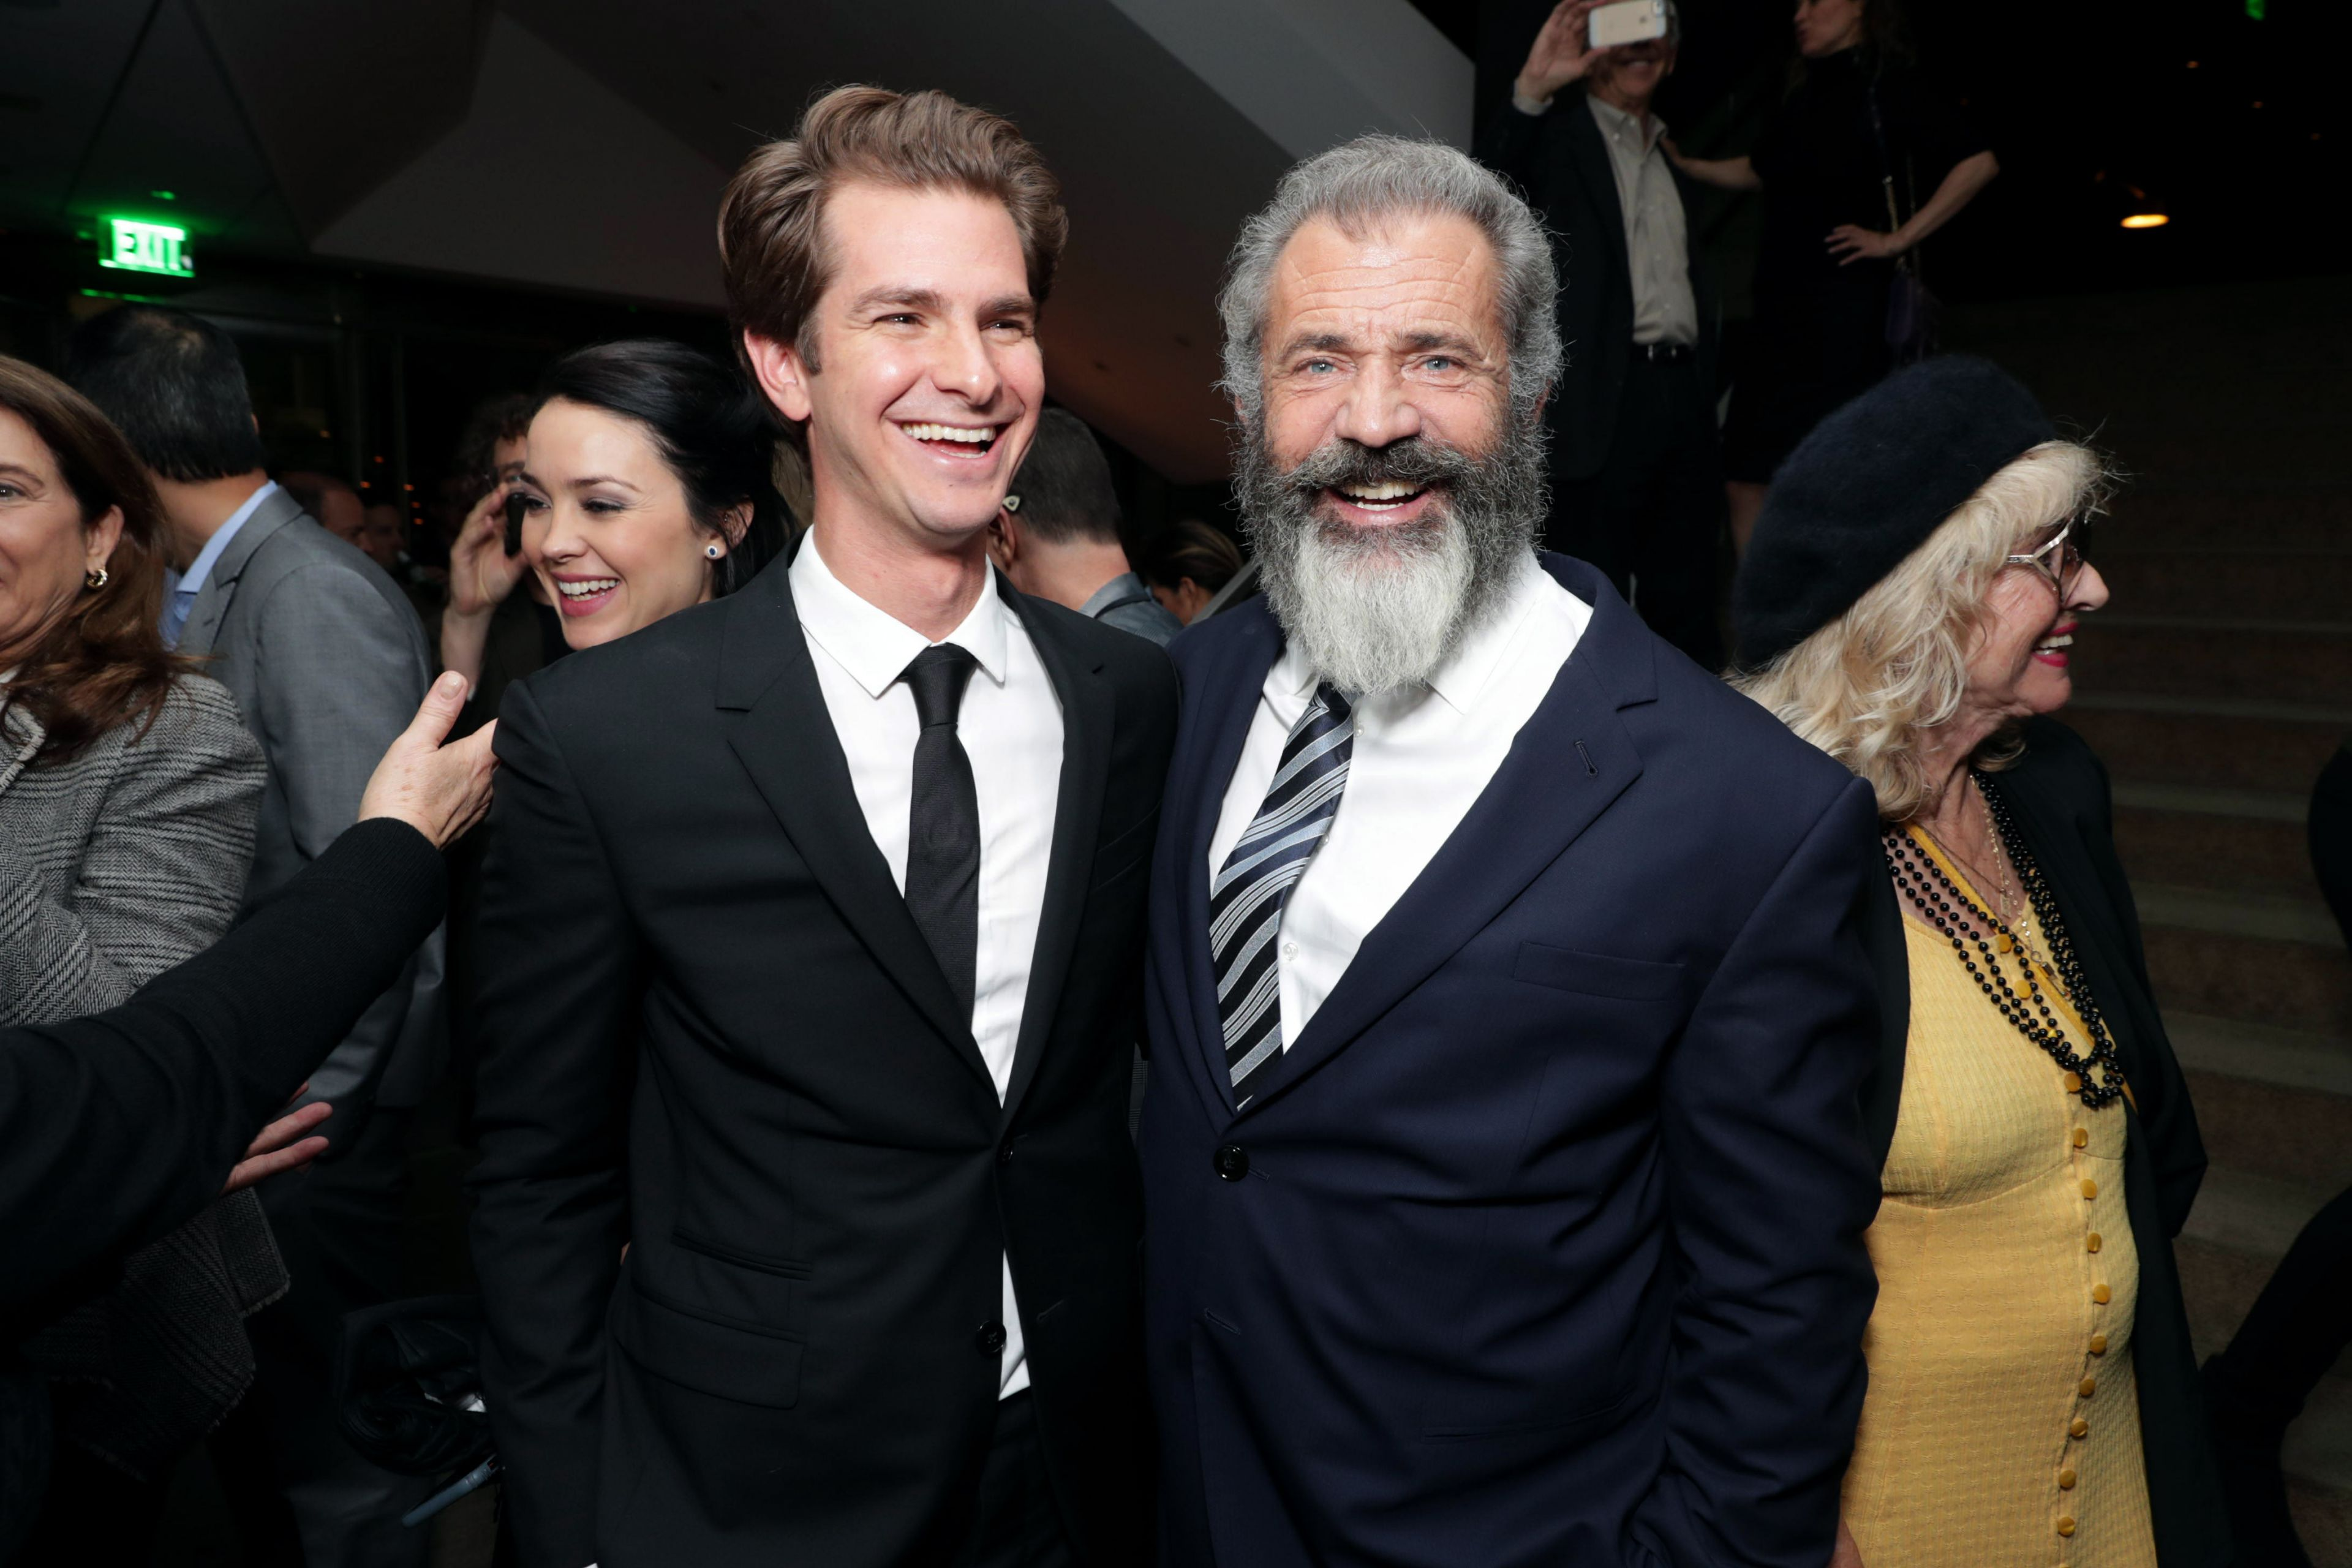 """Andrew Garfield and Director Mel Gibson seen at Summit Entertainment, a Lionsgate Company, Los Angeles Special Screening of """"Hacksaw Ridge"""" after party at The Academy's Samuel Goldwyn Theater on Monday, Oct. 24, 2016, in Beverly Hills, Calif. (Photo by Eric Charbonneau/Invision for Lionsgate/AP Images)"""